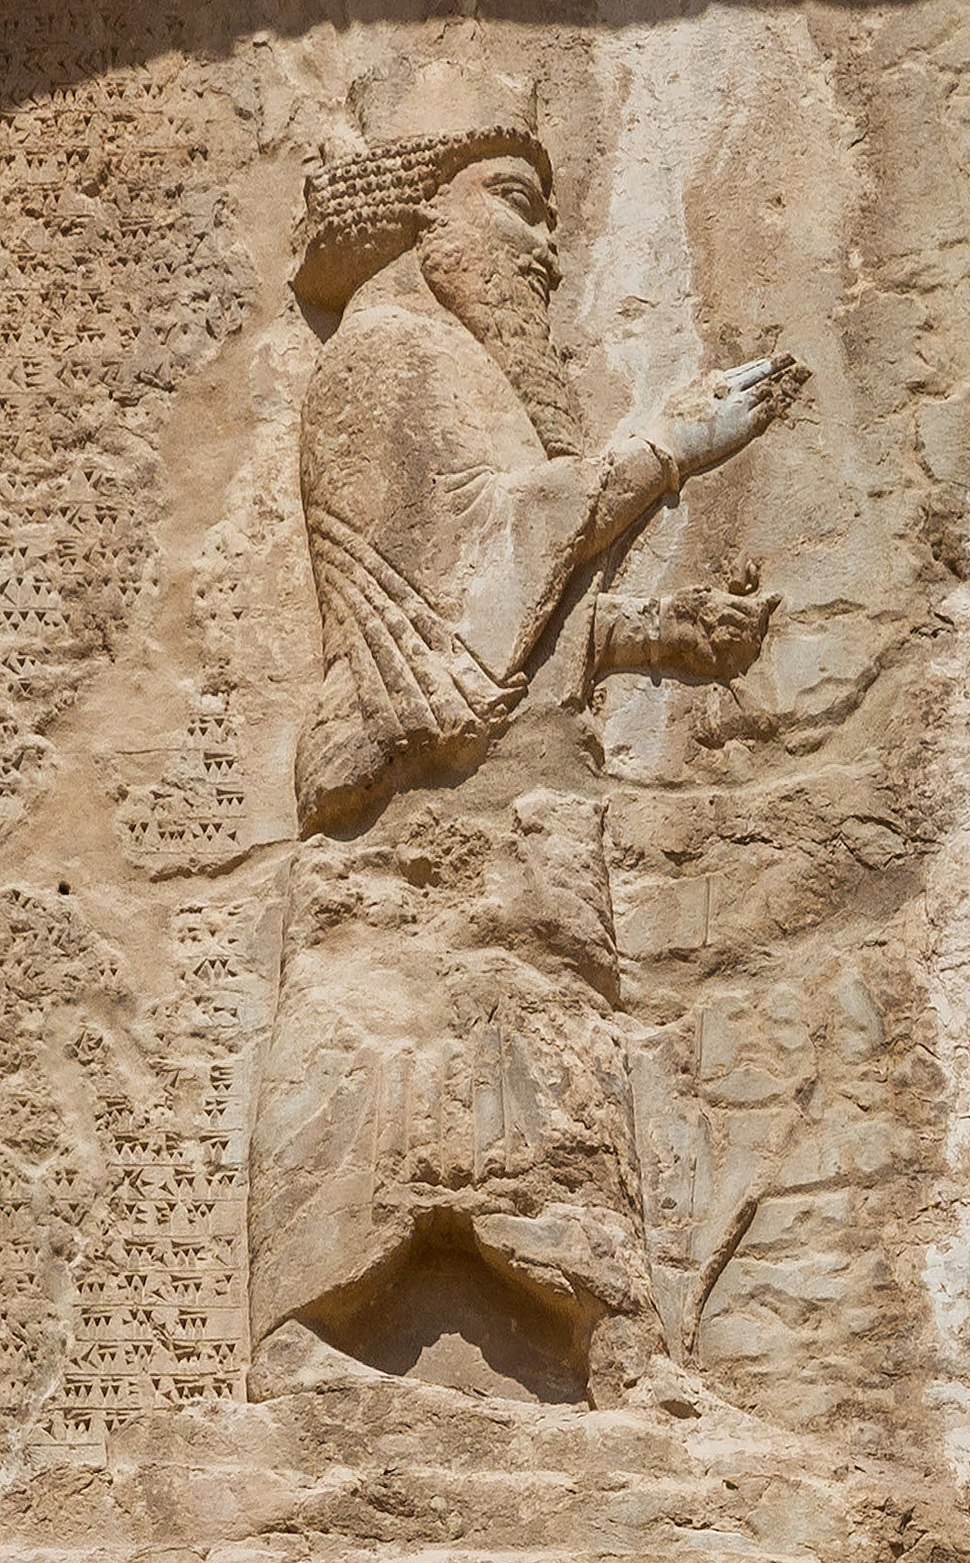 Tomb of Darius I Image of Darius I